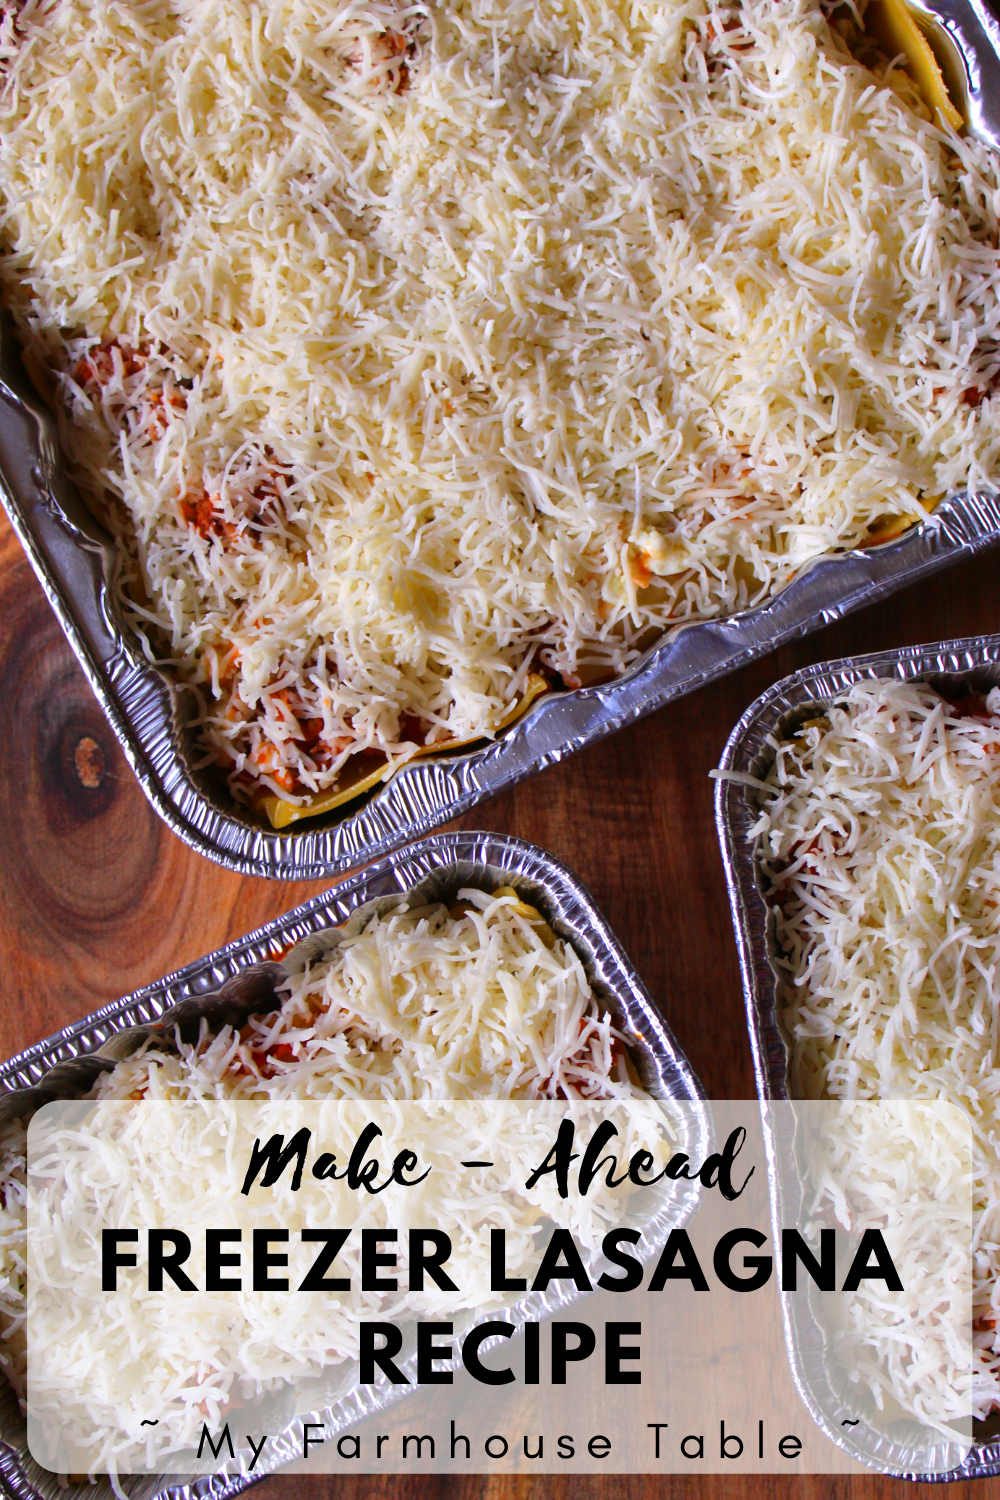 Make Ahead Freezer Lasagna Recipe Homemade Stouffers Lasagna with Meat Sauce Lasagna with Ground Beef Sausage and Cheese The Best Lasagna Freezer Meals Simple and Easy Lasagna Recipe My Farmhouse Table